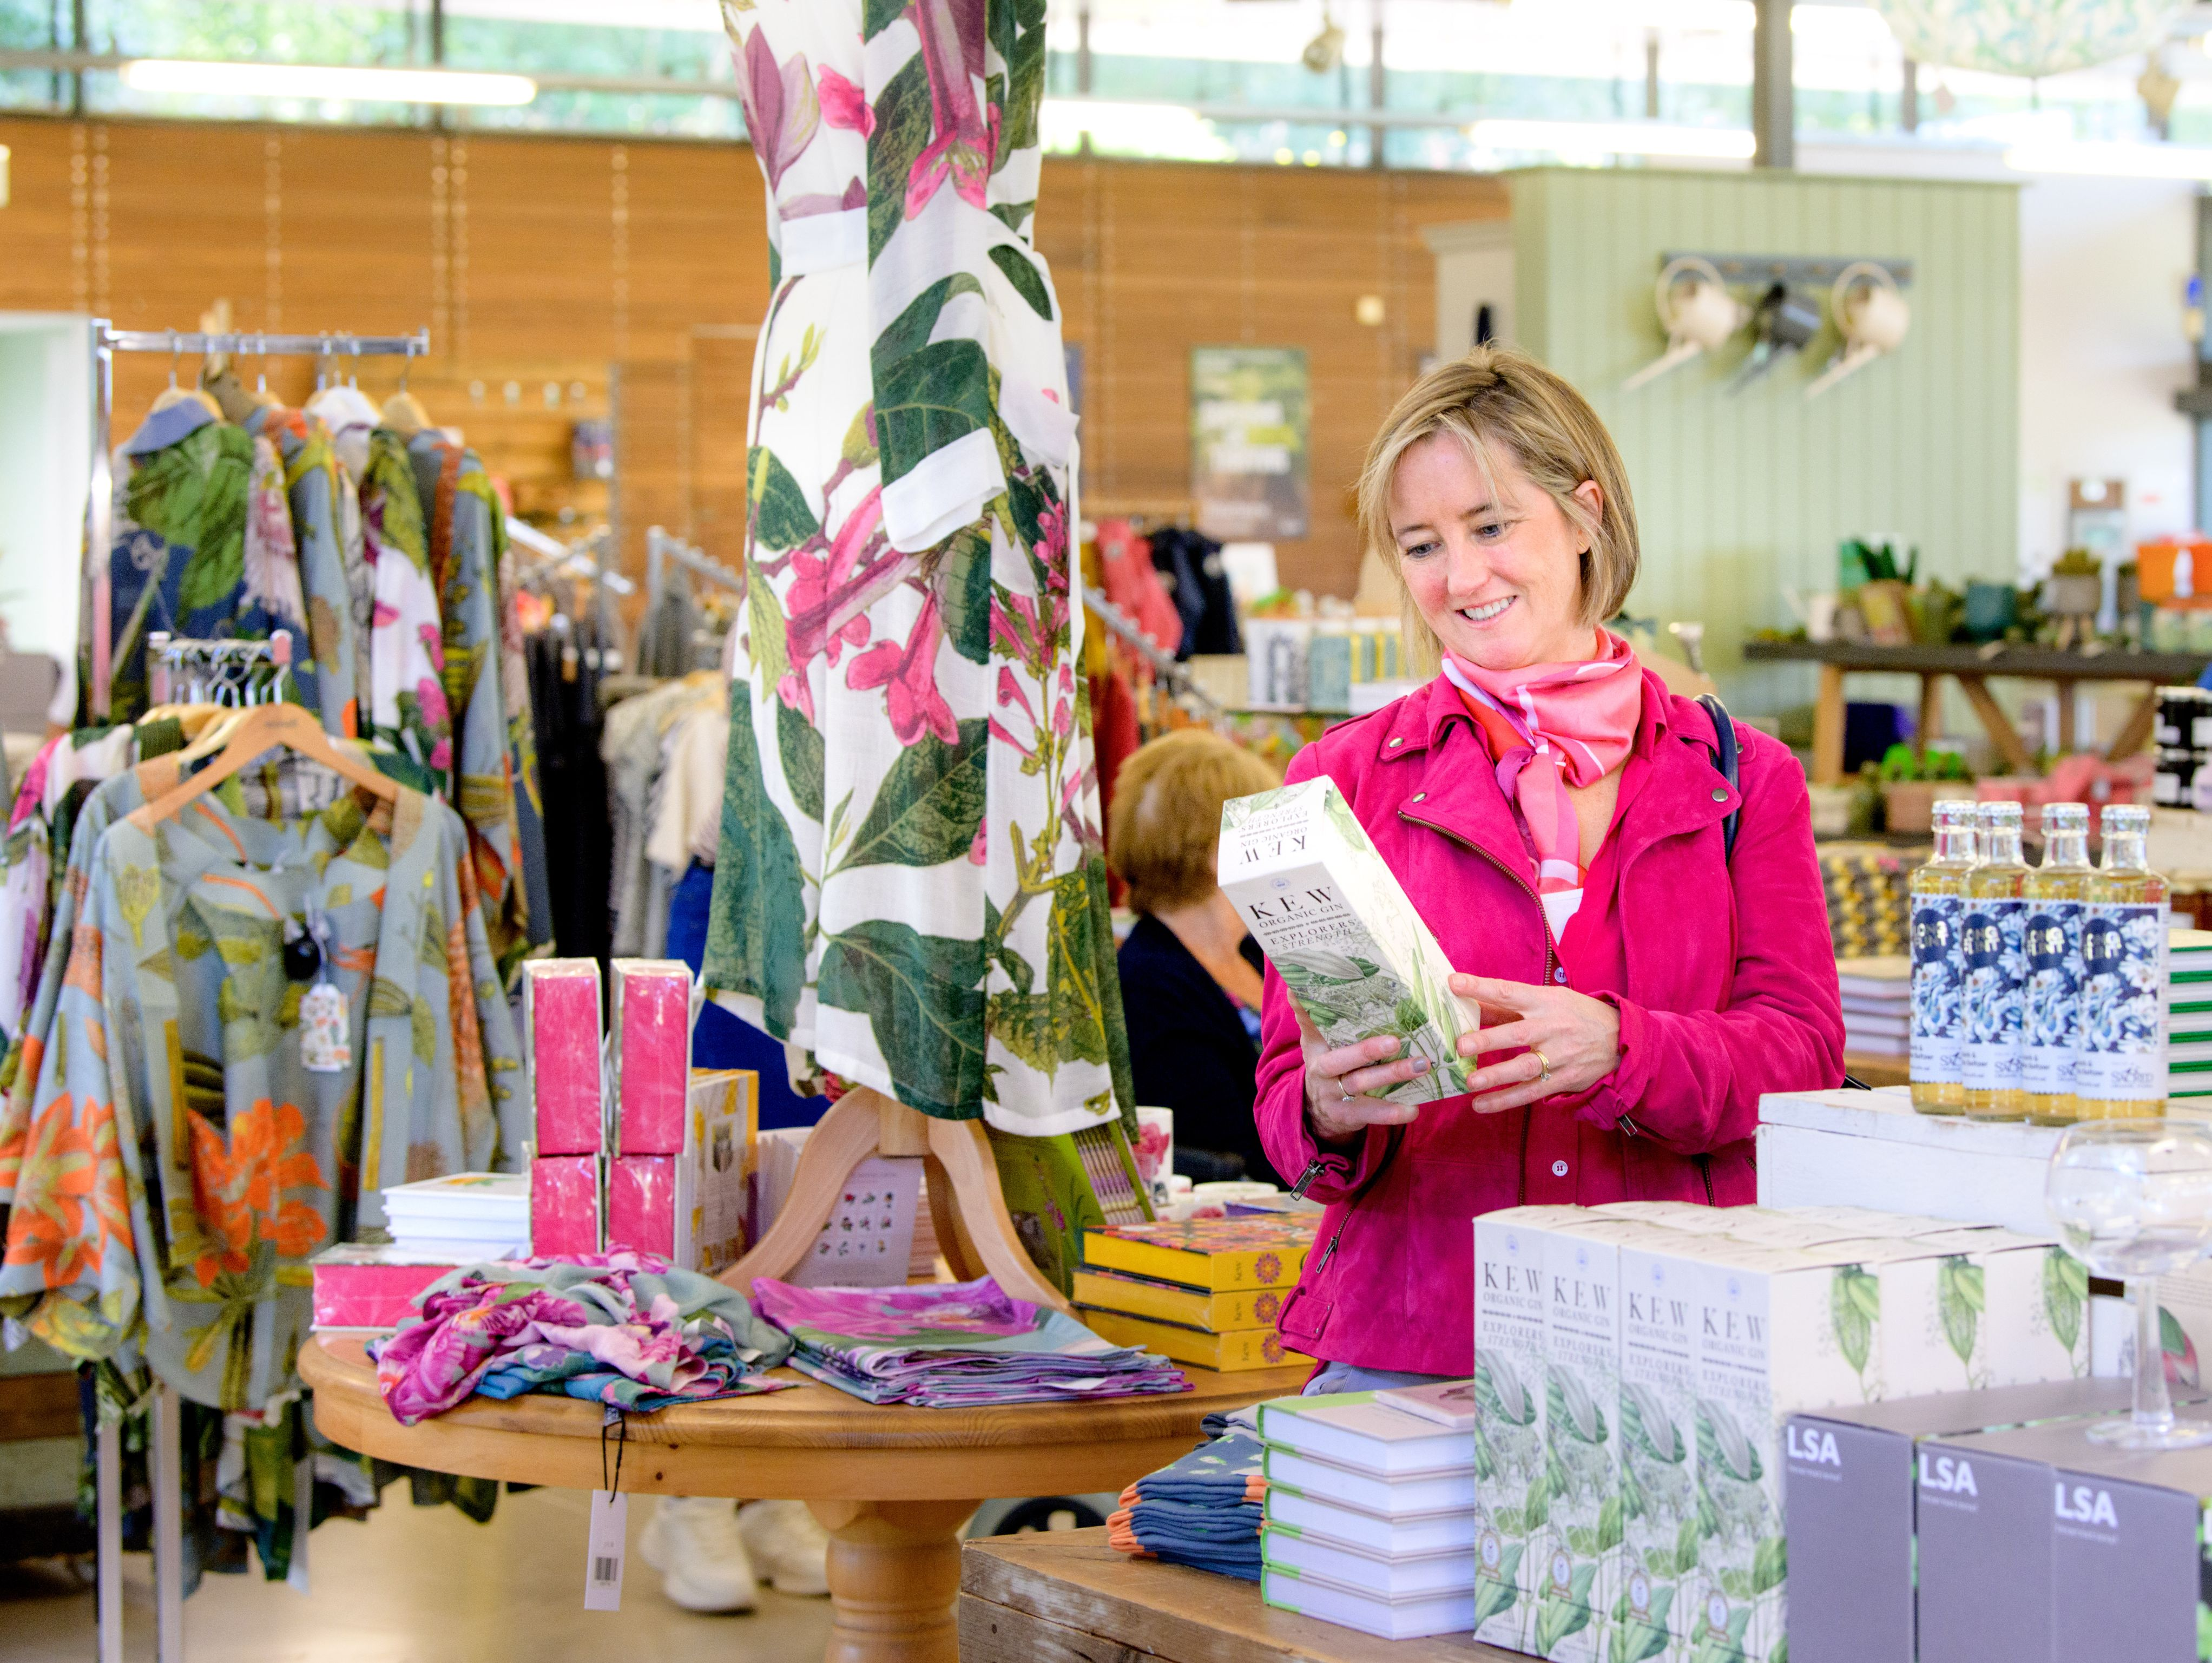 Inside the Wakehurst gift shop